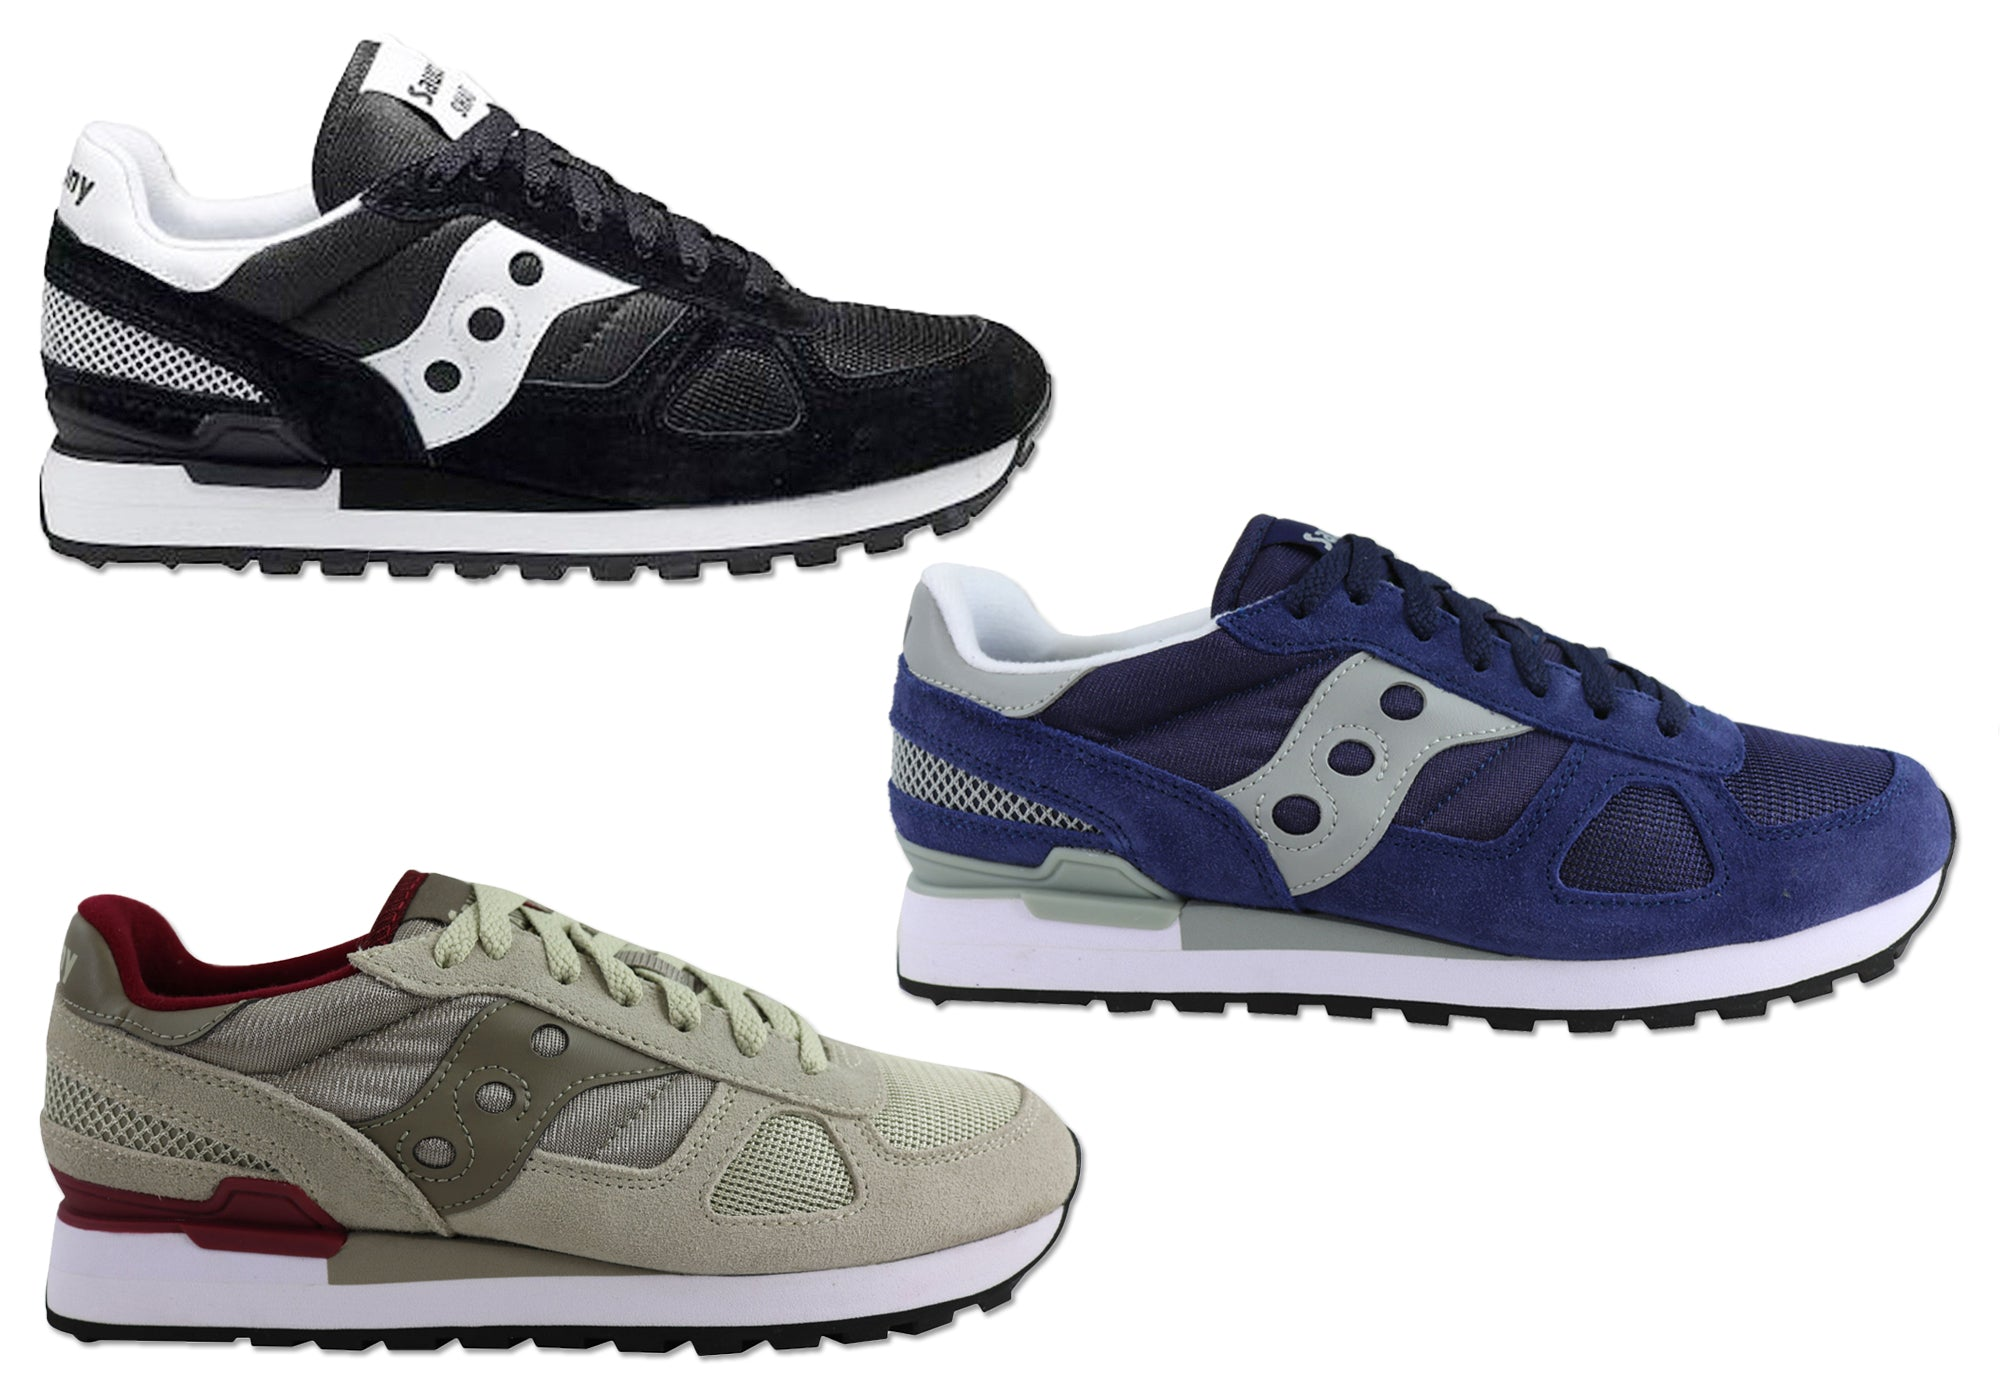 dd6a8d9100cc Details about NEW SAUCONY MENS SHADOW ORIGINAL RETRO INSPIRED SNEAKERS  JOGGERS